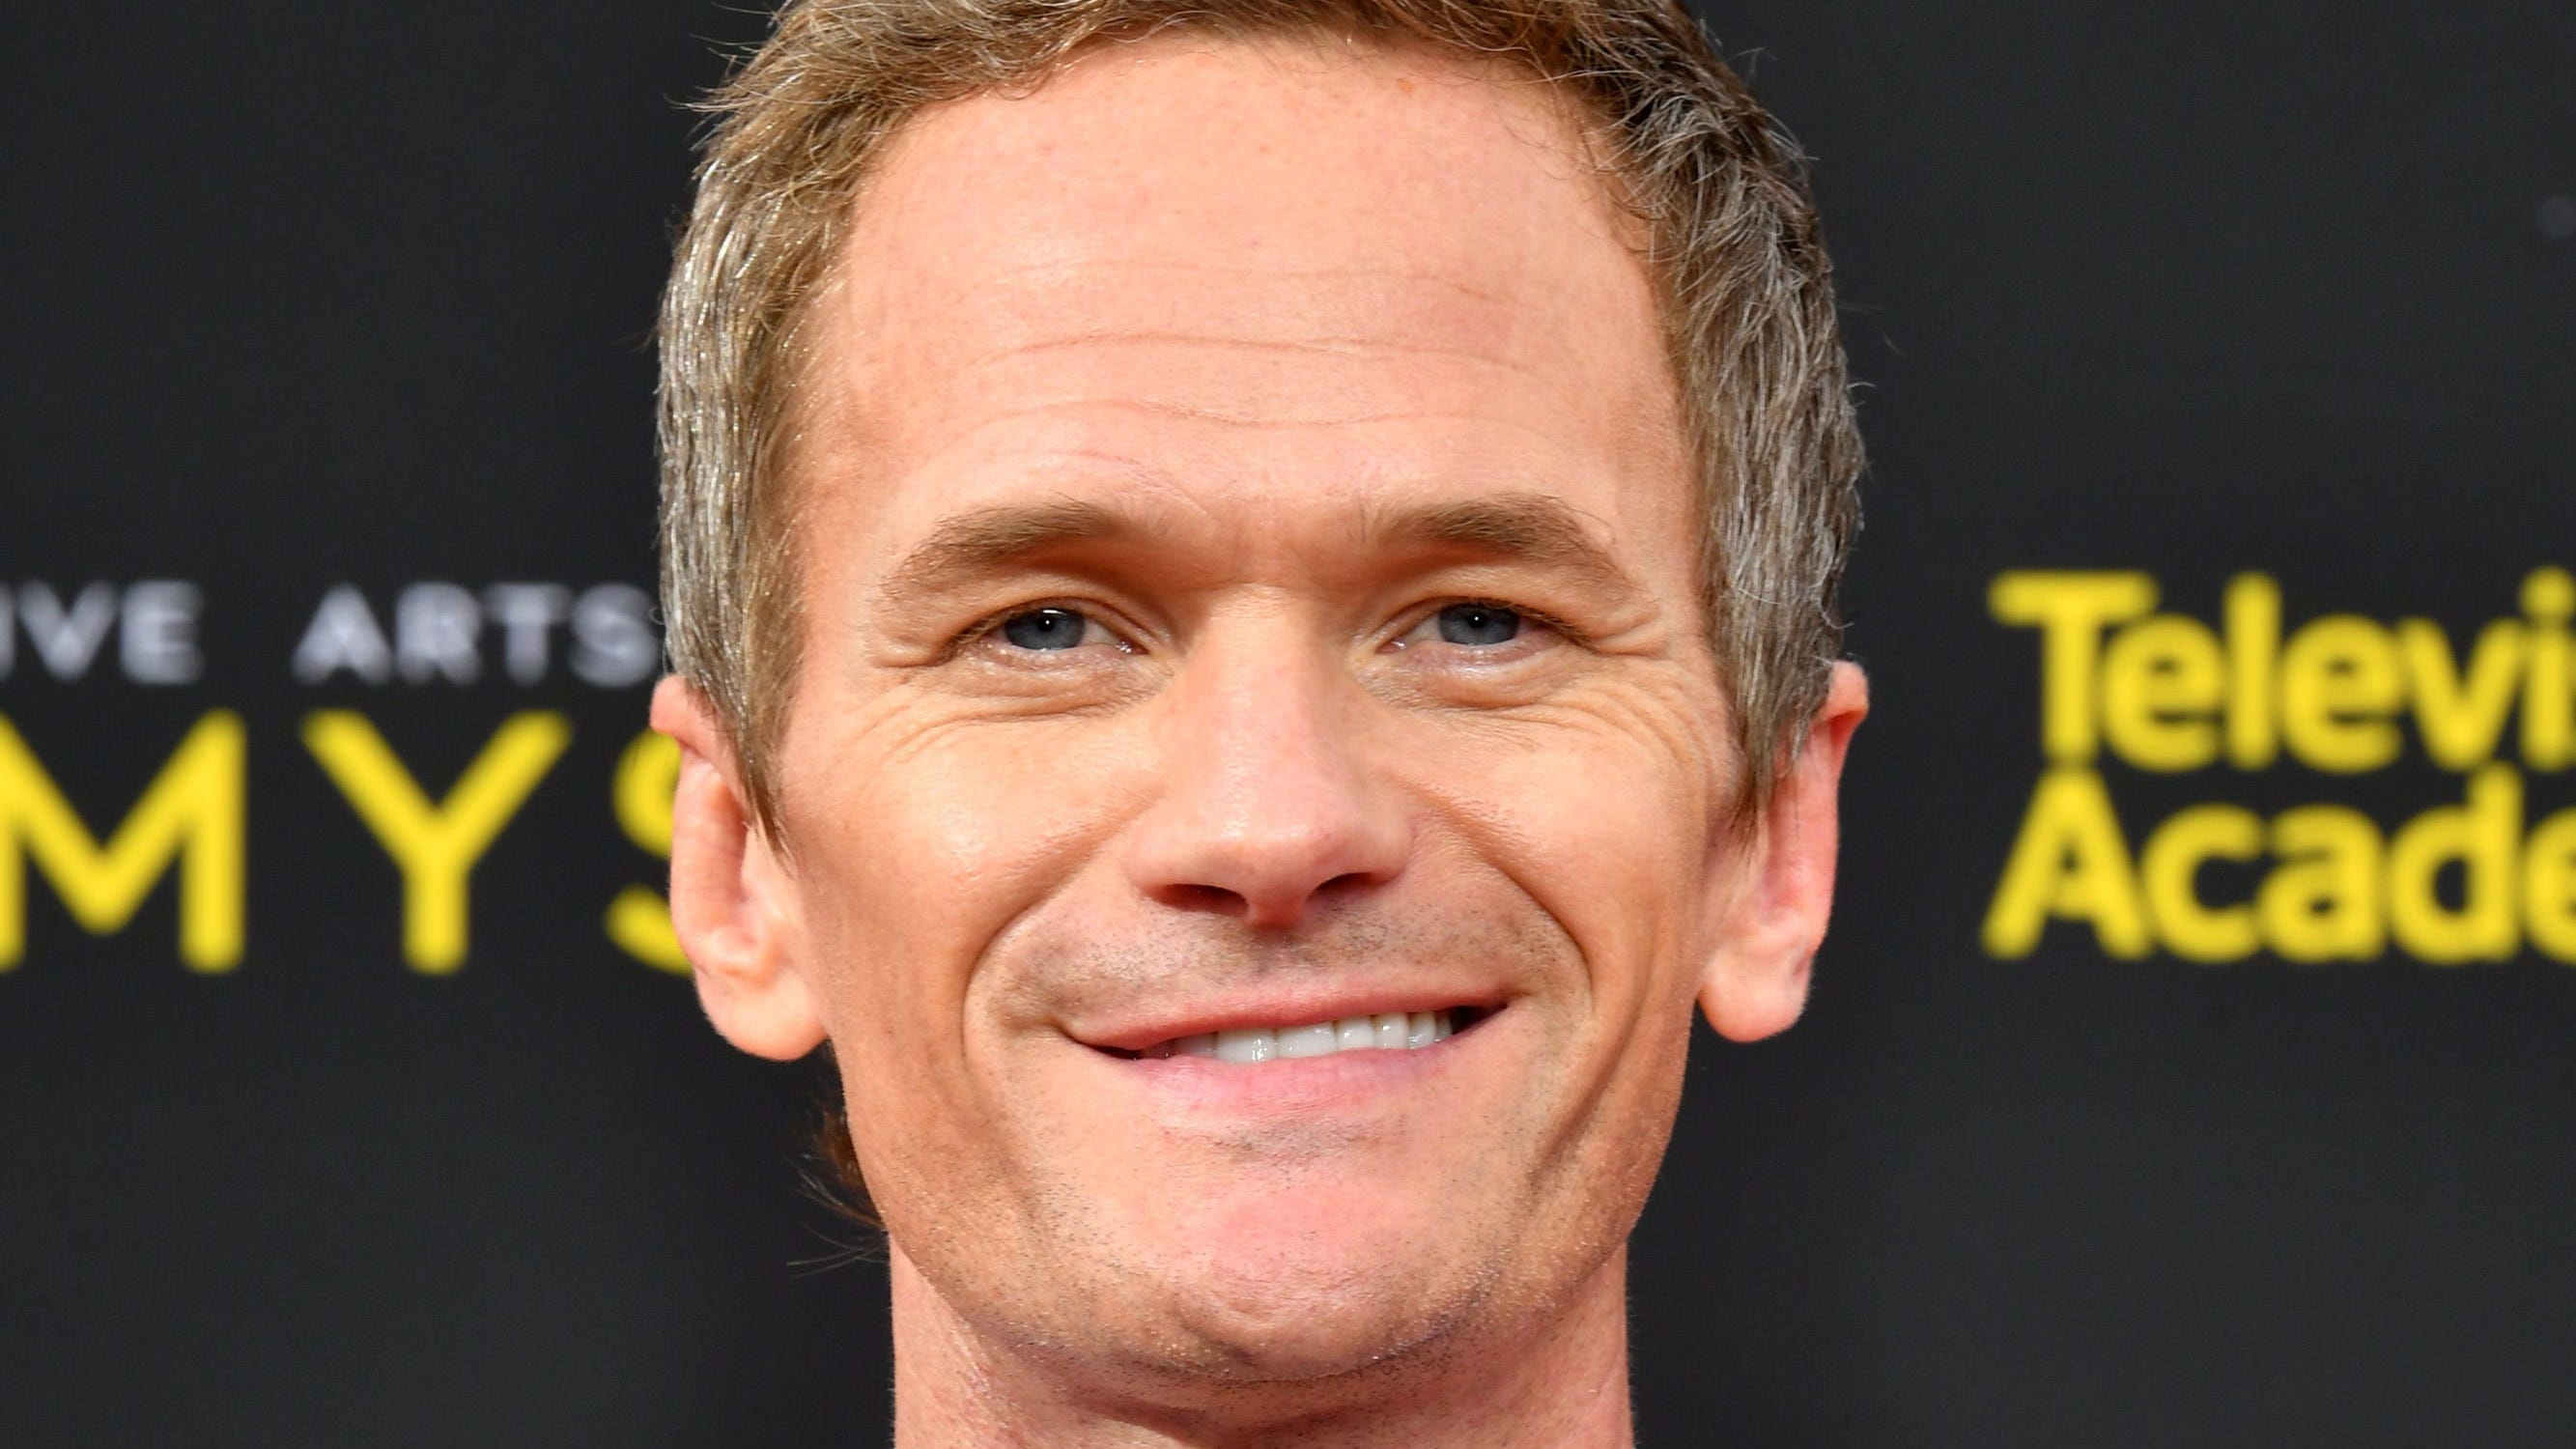 The cast of 'How I Met Your Mother' ranked by net worth